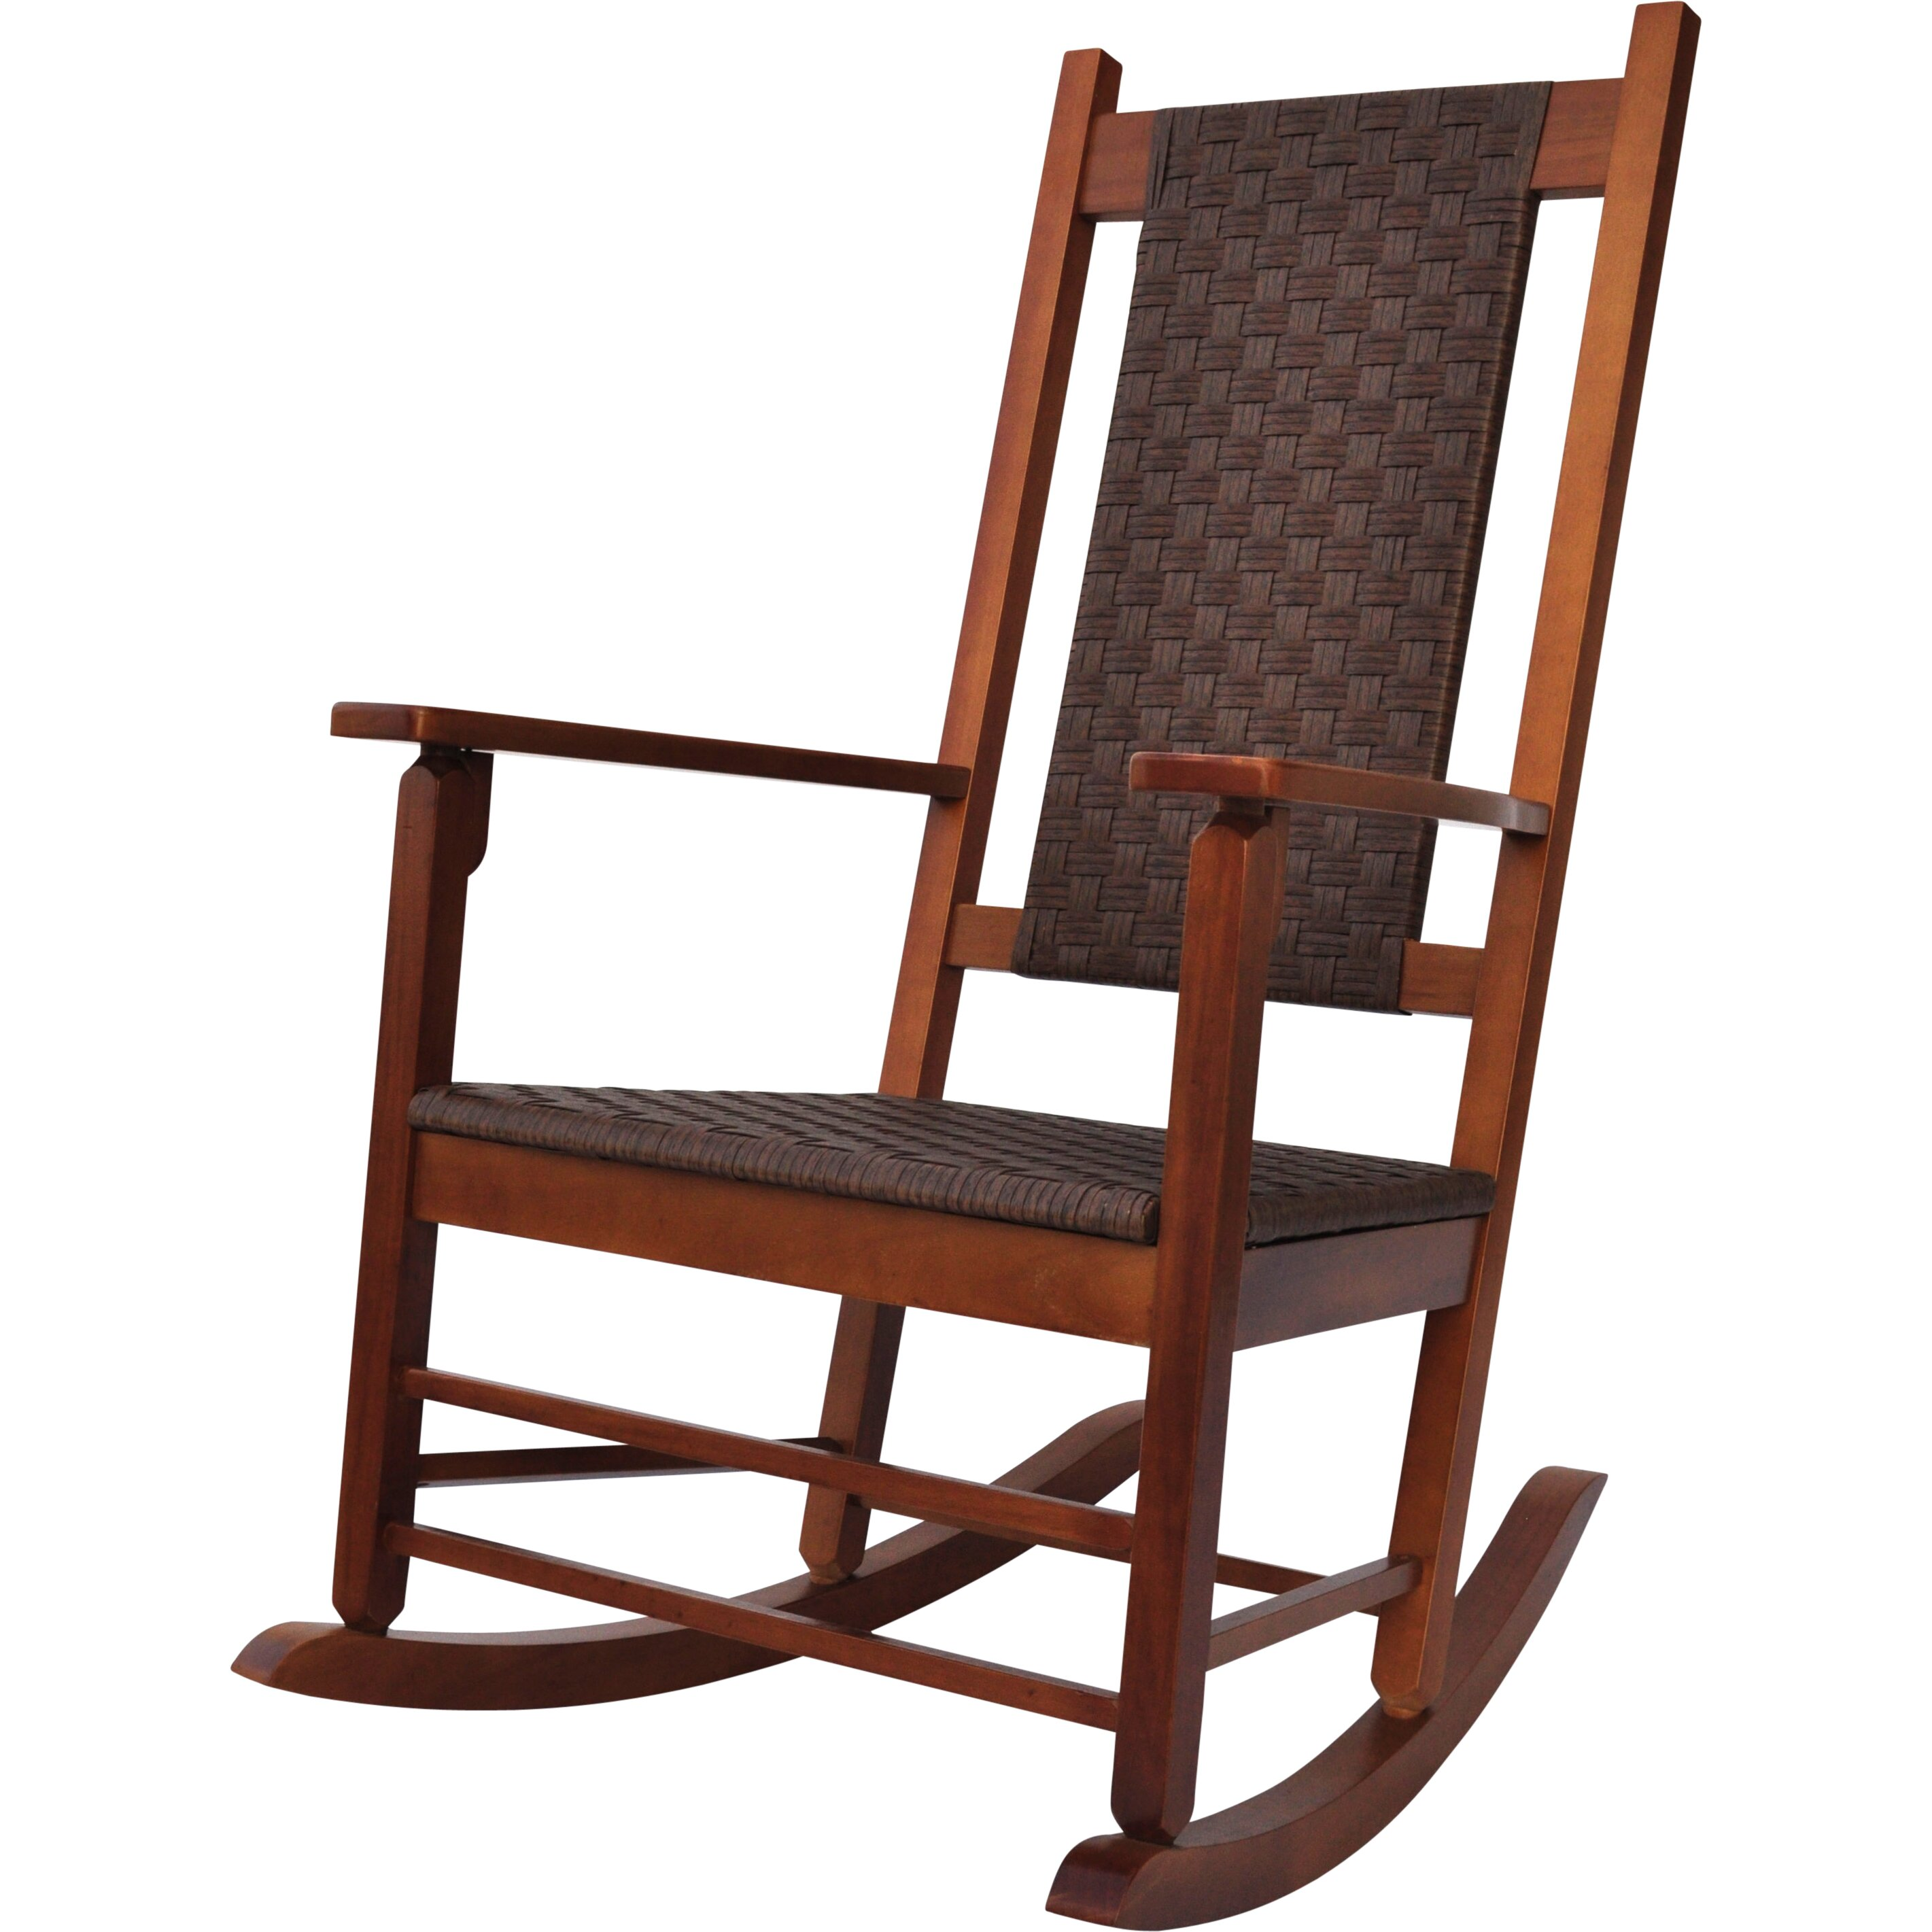 Amazing photo of Outdoor Patio Furniture Wood Patio Rocking Chairs Shine Company  with #995732 color and 2842x2842 pixels